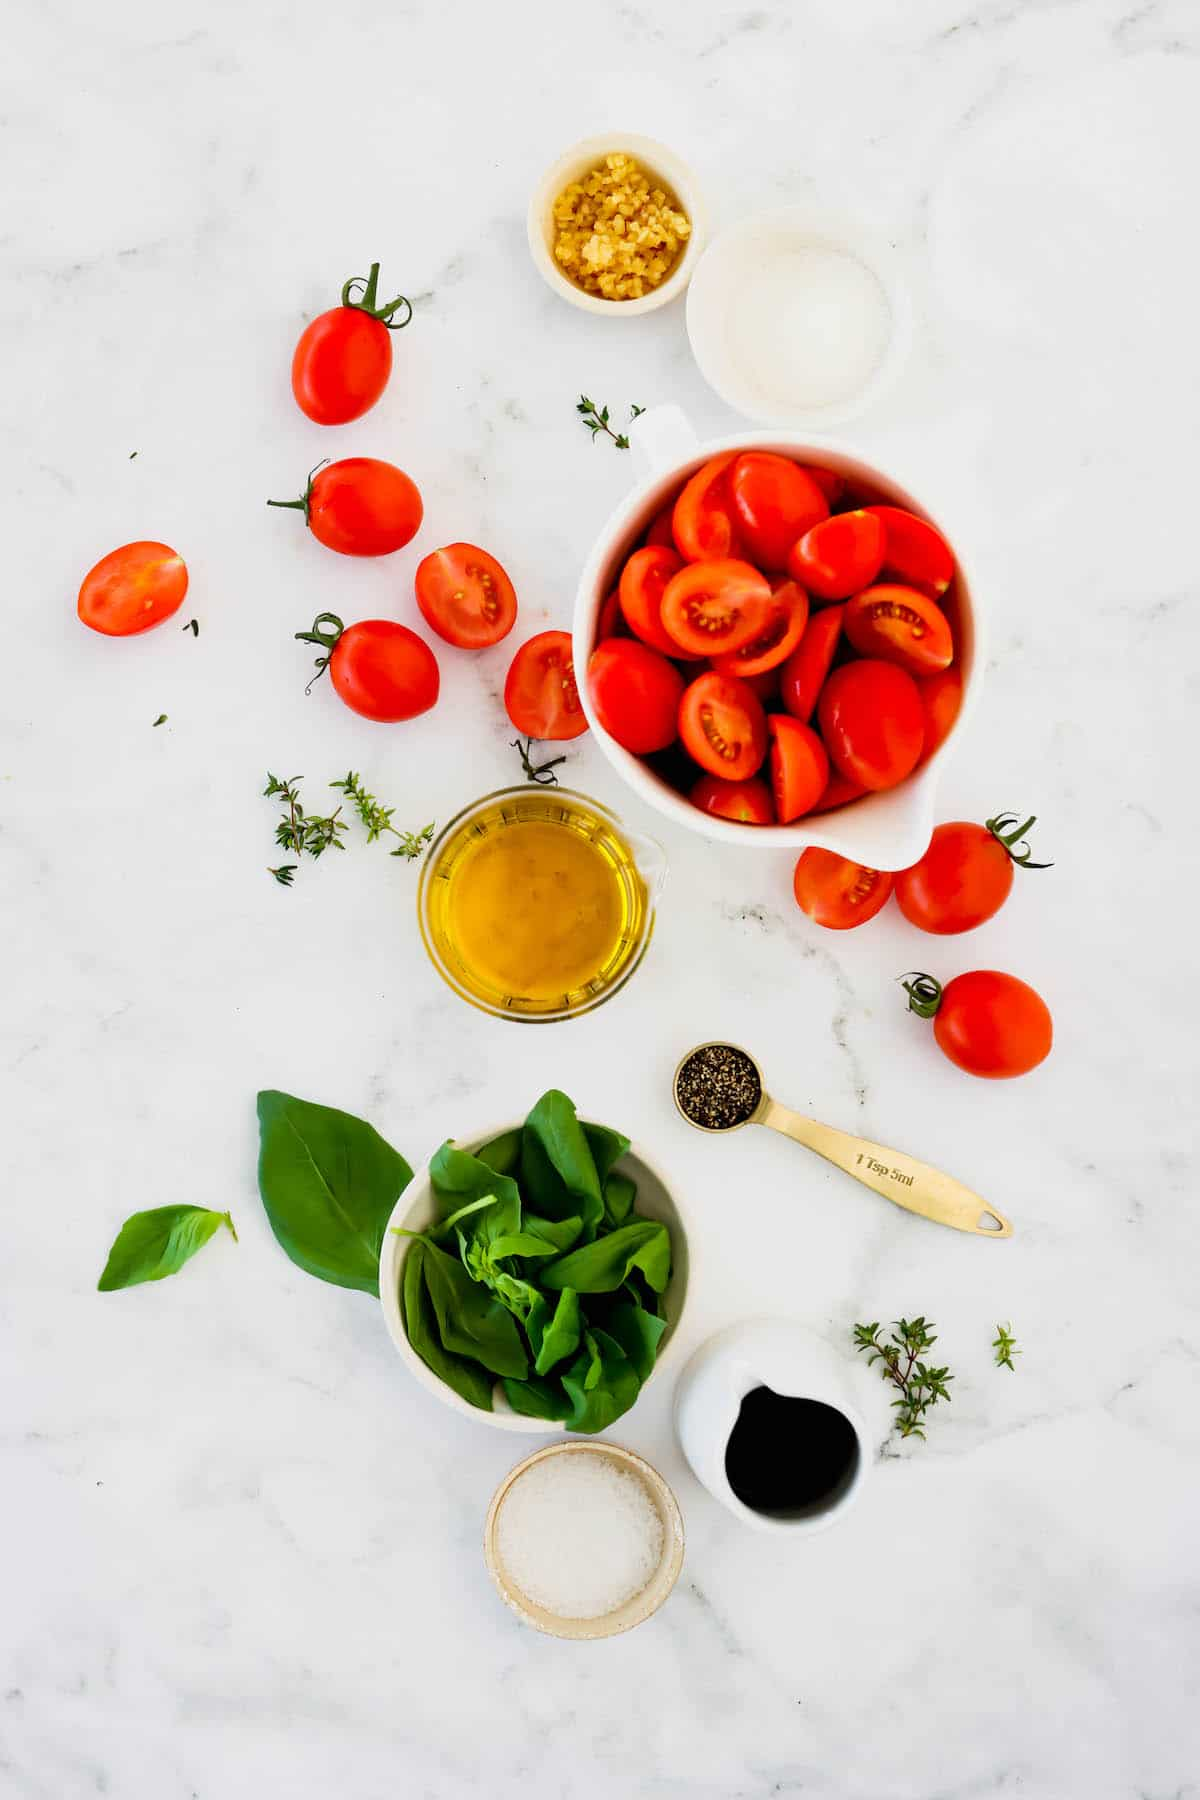 Overhead view of the ingredients to make roasted tomatoes